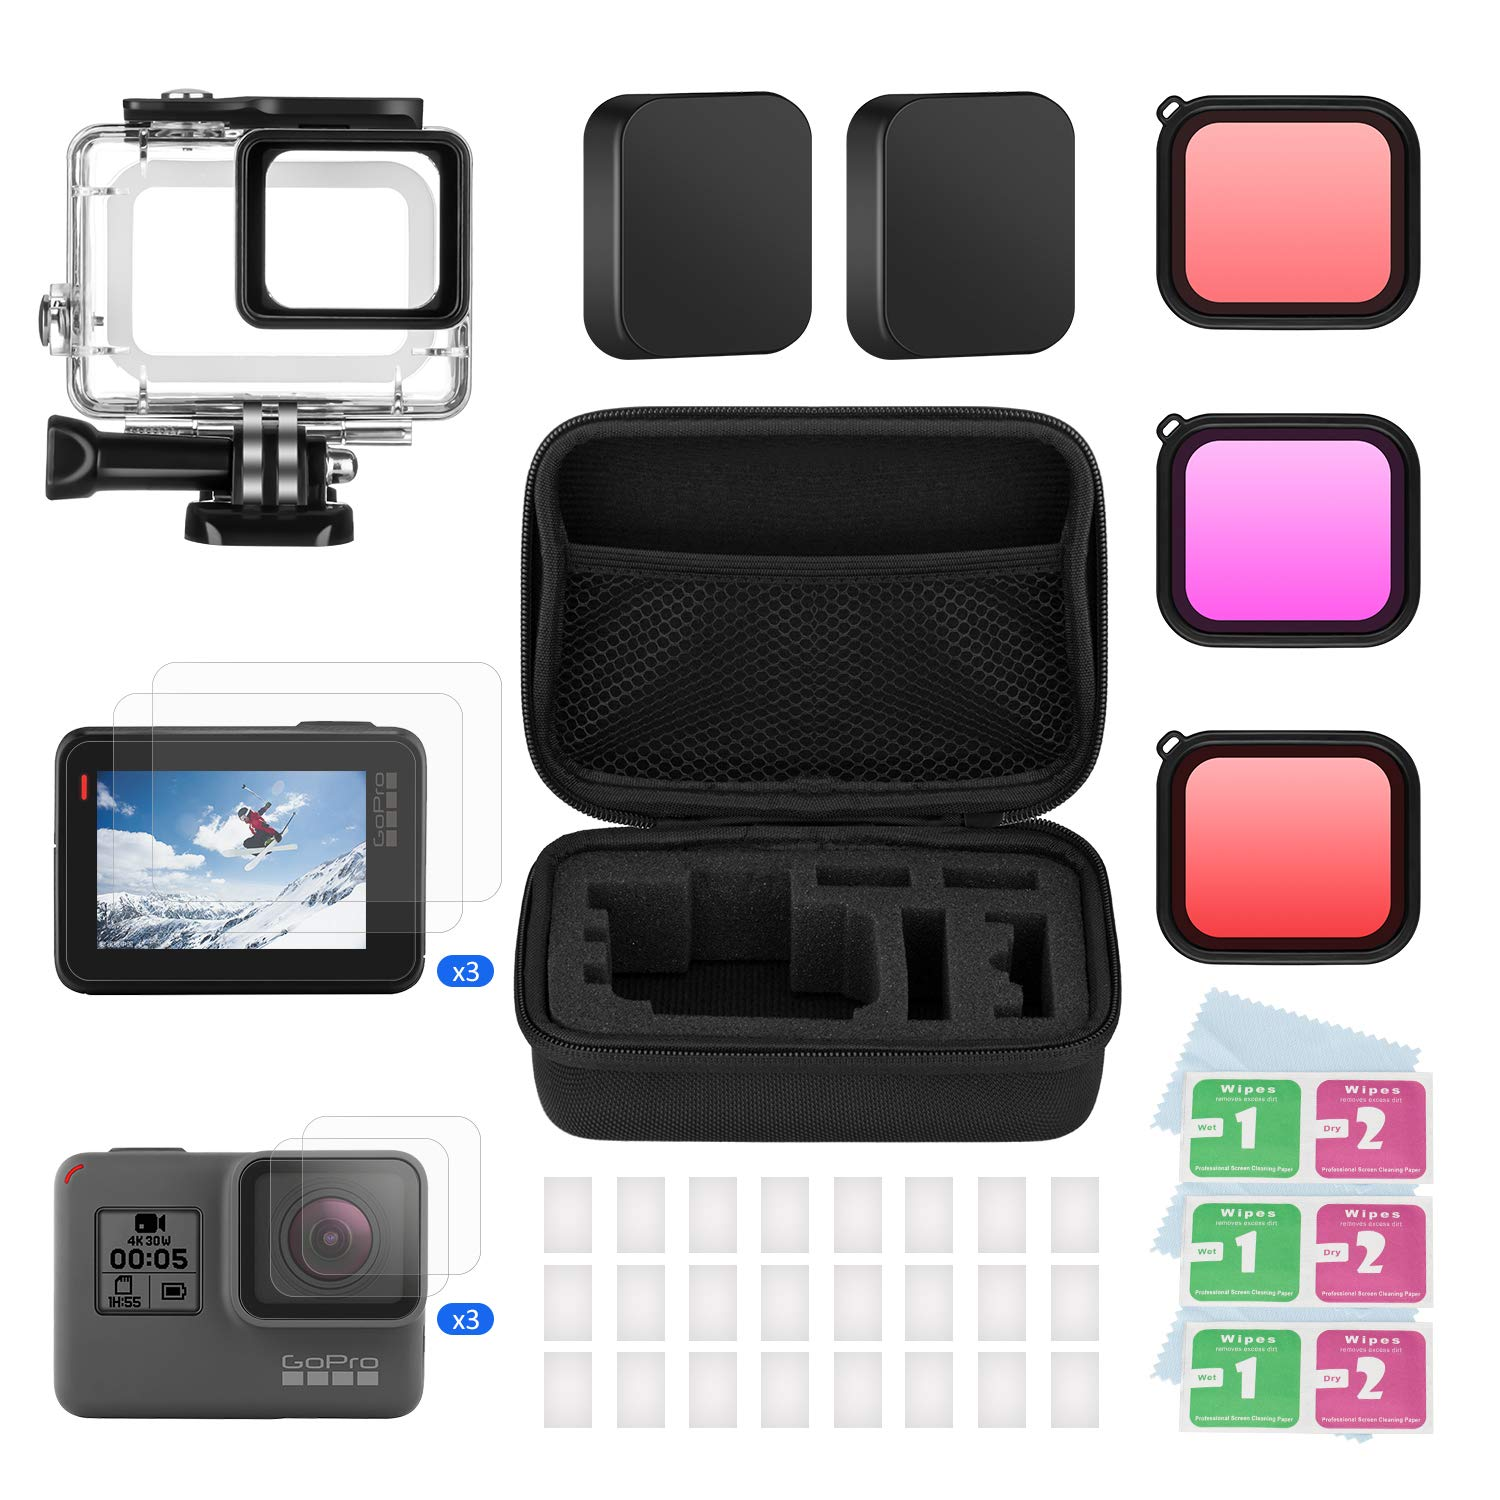 BOYISEN Accessory Kit for Gopro Hero 7(Only Black)/HD(2018)/6/5 with Housing Case and Filter Kit Including Waterproof housing case, Filter, Screen Protector, Lens Cap, Anti-Fog Inserts, Carrying Case